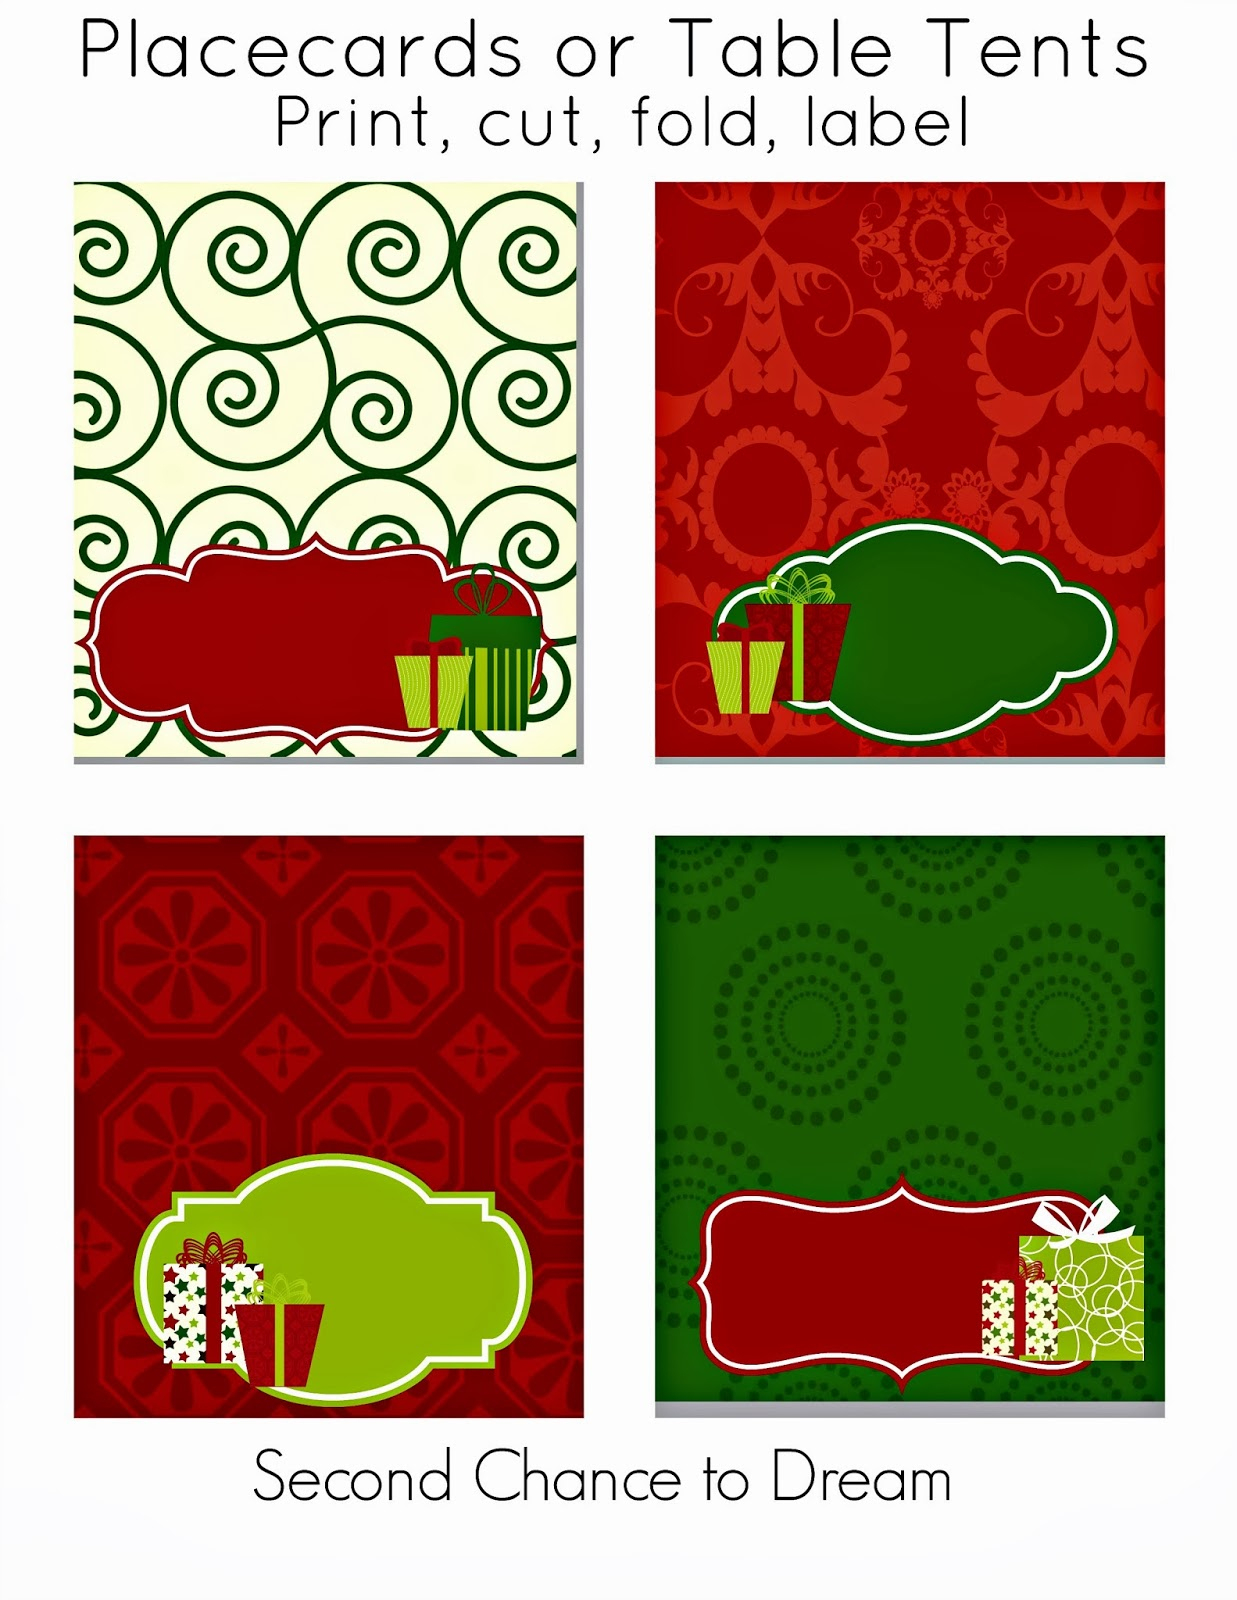 Second Chance To Dream - Free Christmas Party Printables - Free Printable Christmas Tent Cards